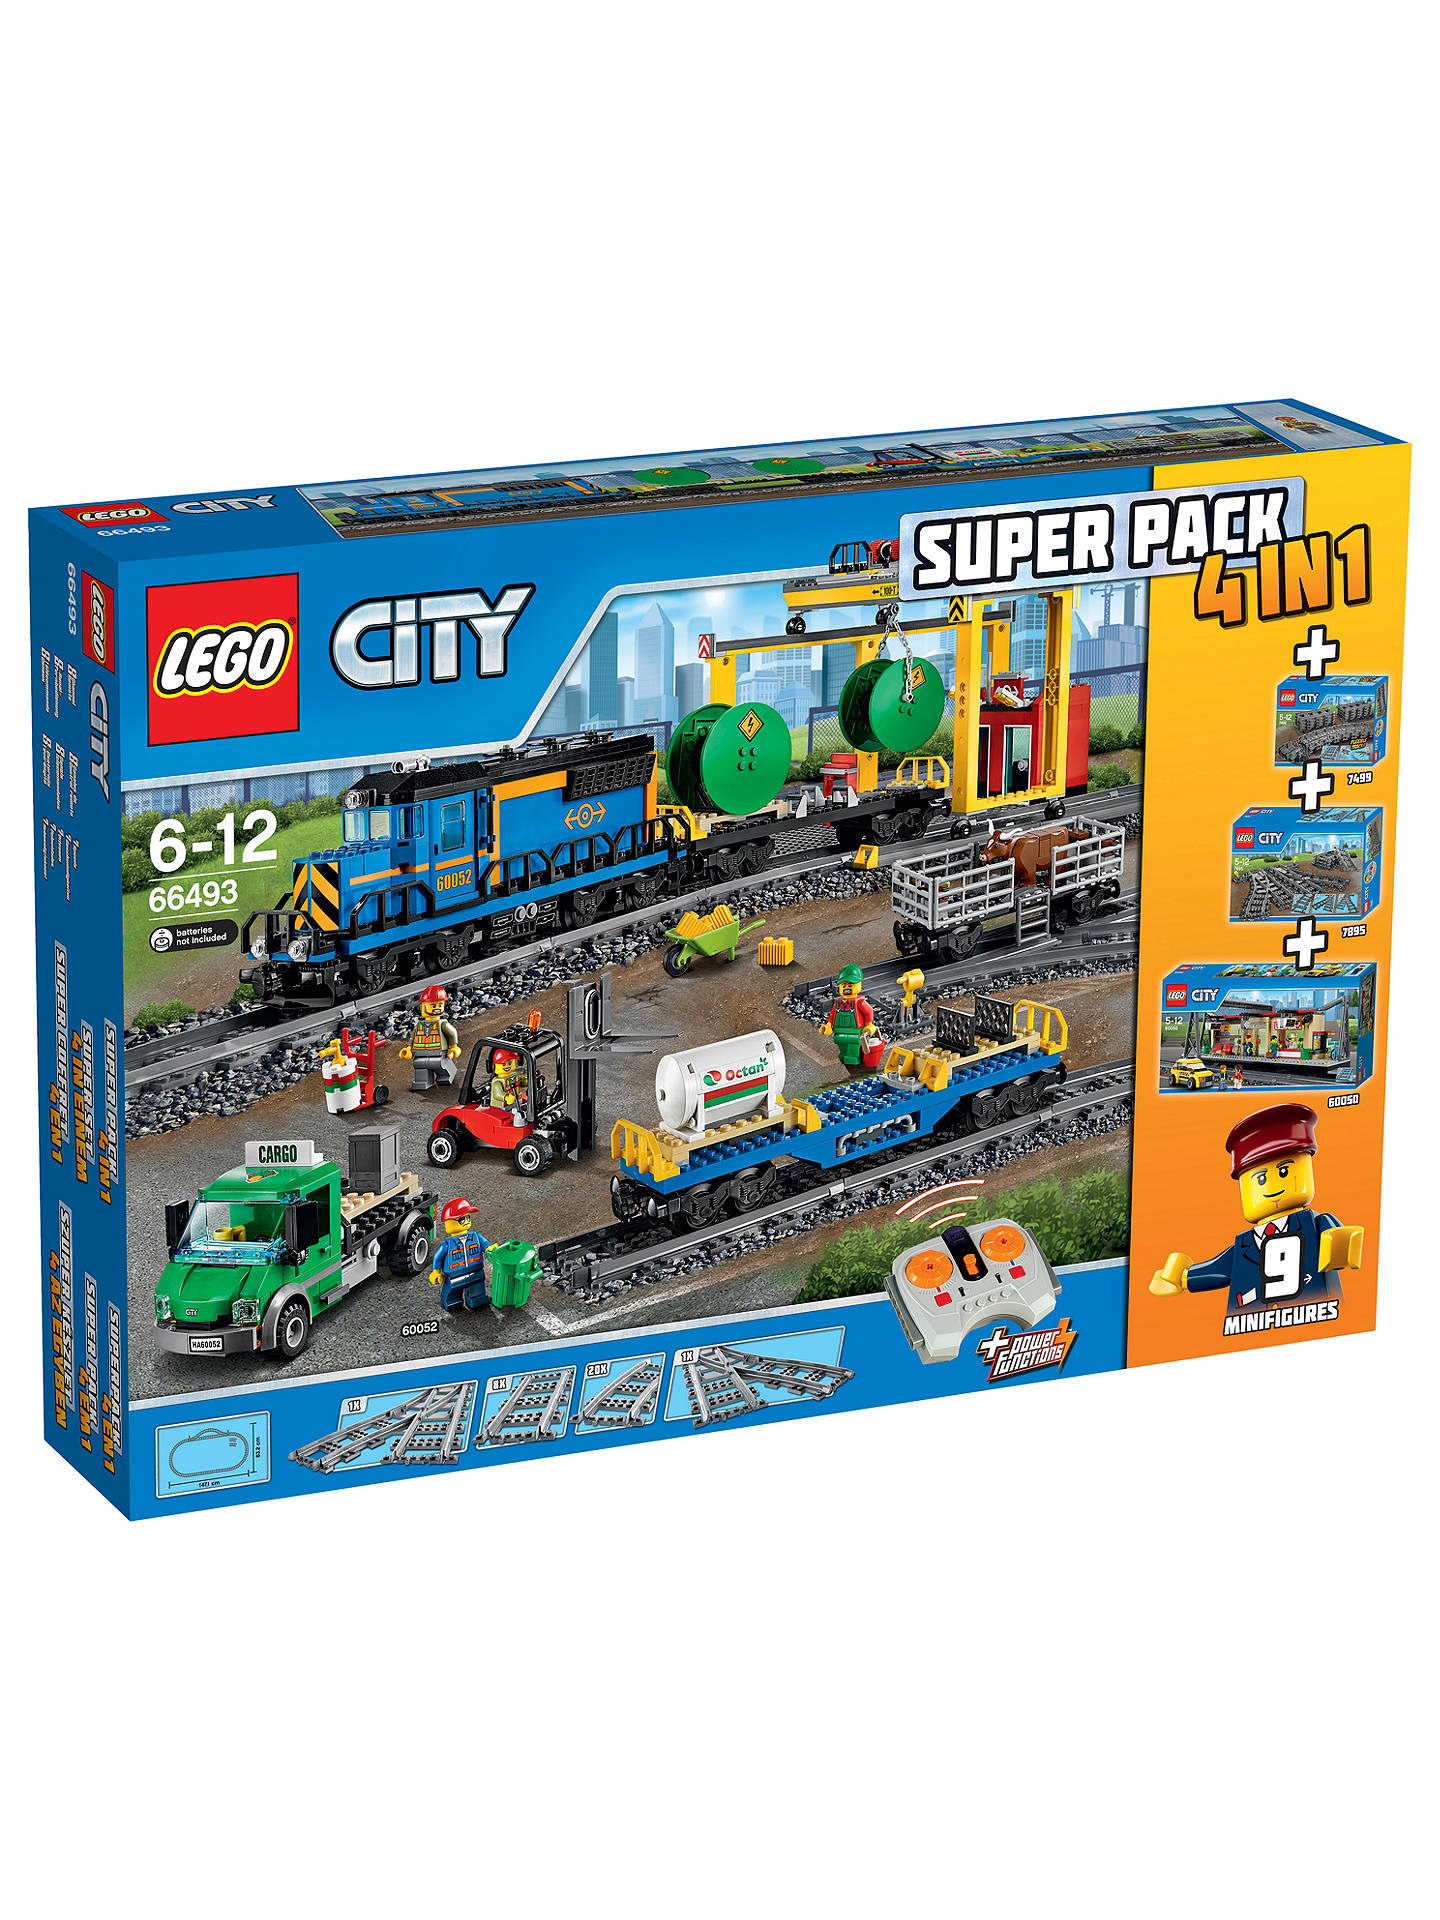 Lego City 66493 Remote Control Cargo Train Station Tracks And Power Functions 4 In 1 Super Pack At John Lewis Partners